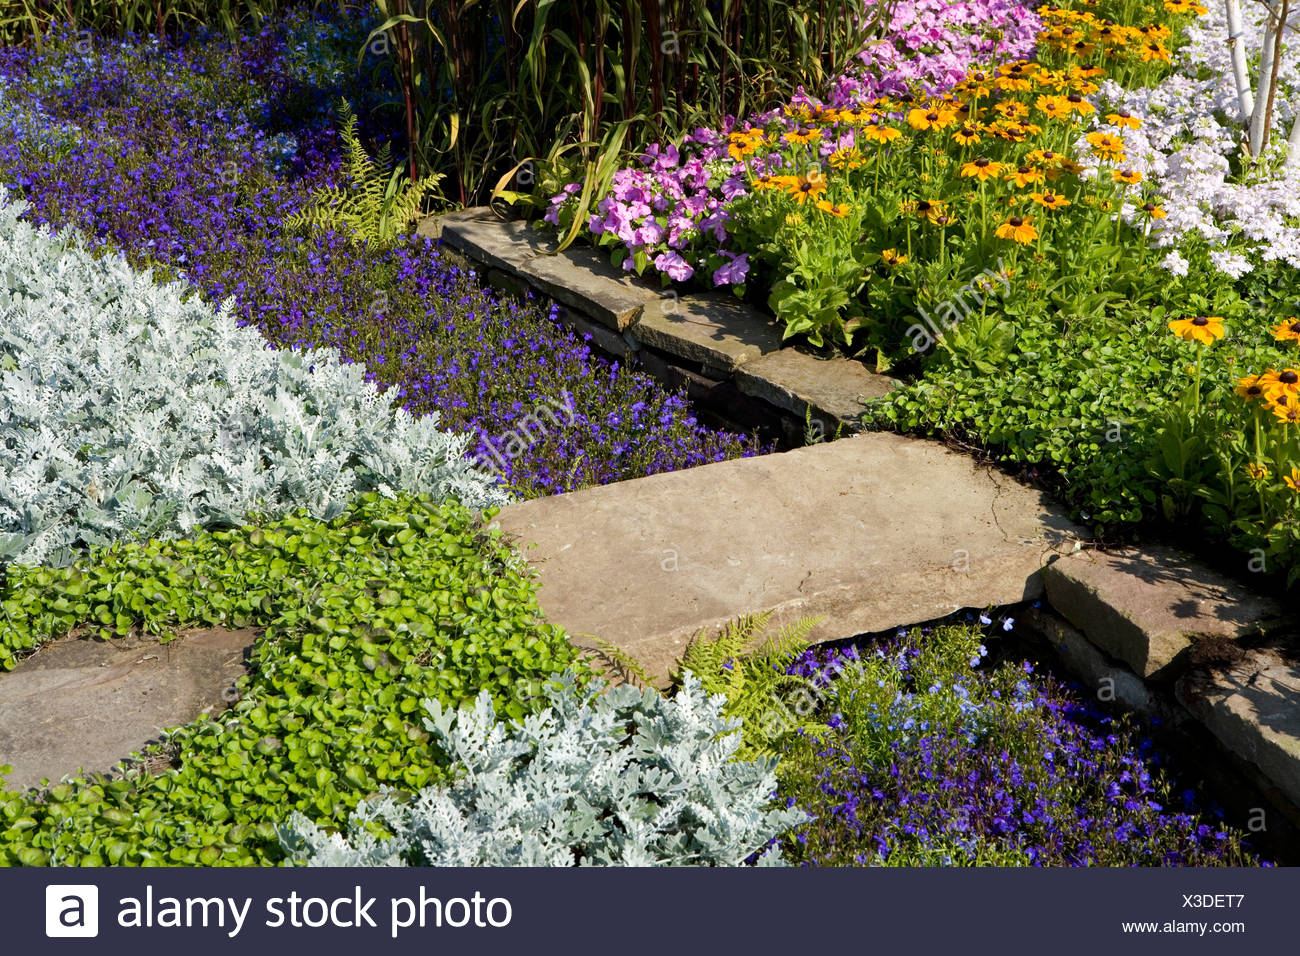 Stepping Stone Across A Flower Bed   Stock Image